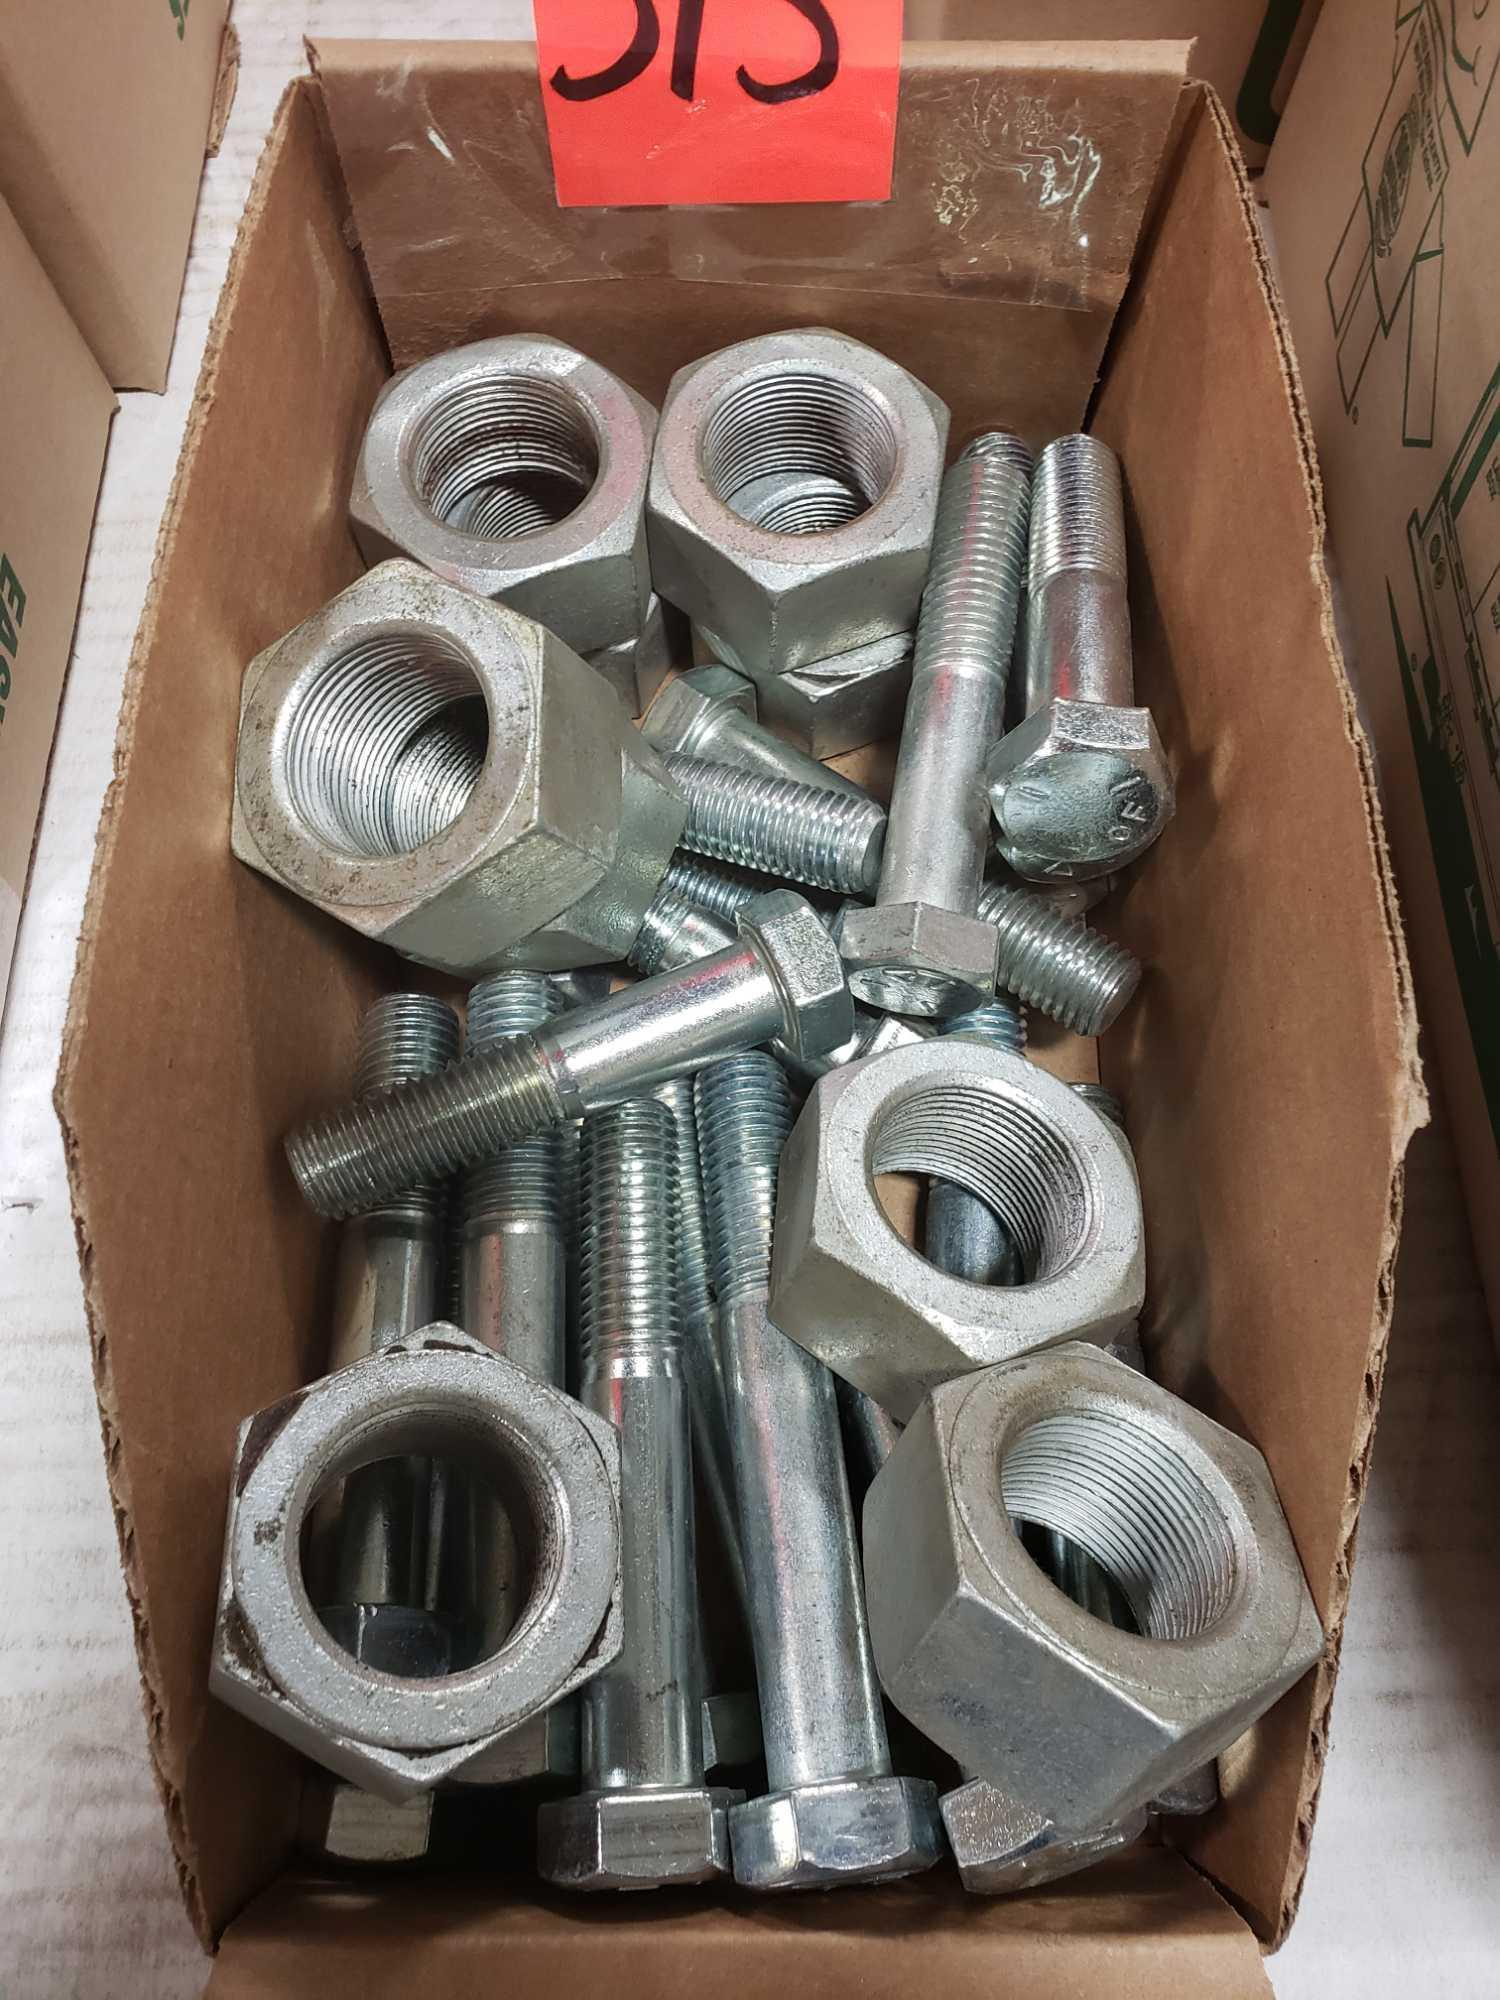 Assorted box new hardware, high grade, nuts, bolts, washers, etc. New in box. - Image 2 of 2